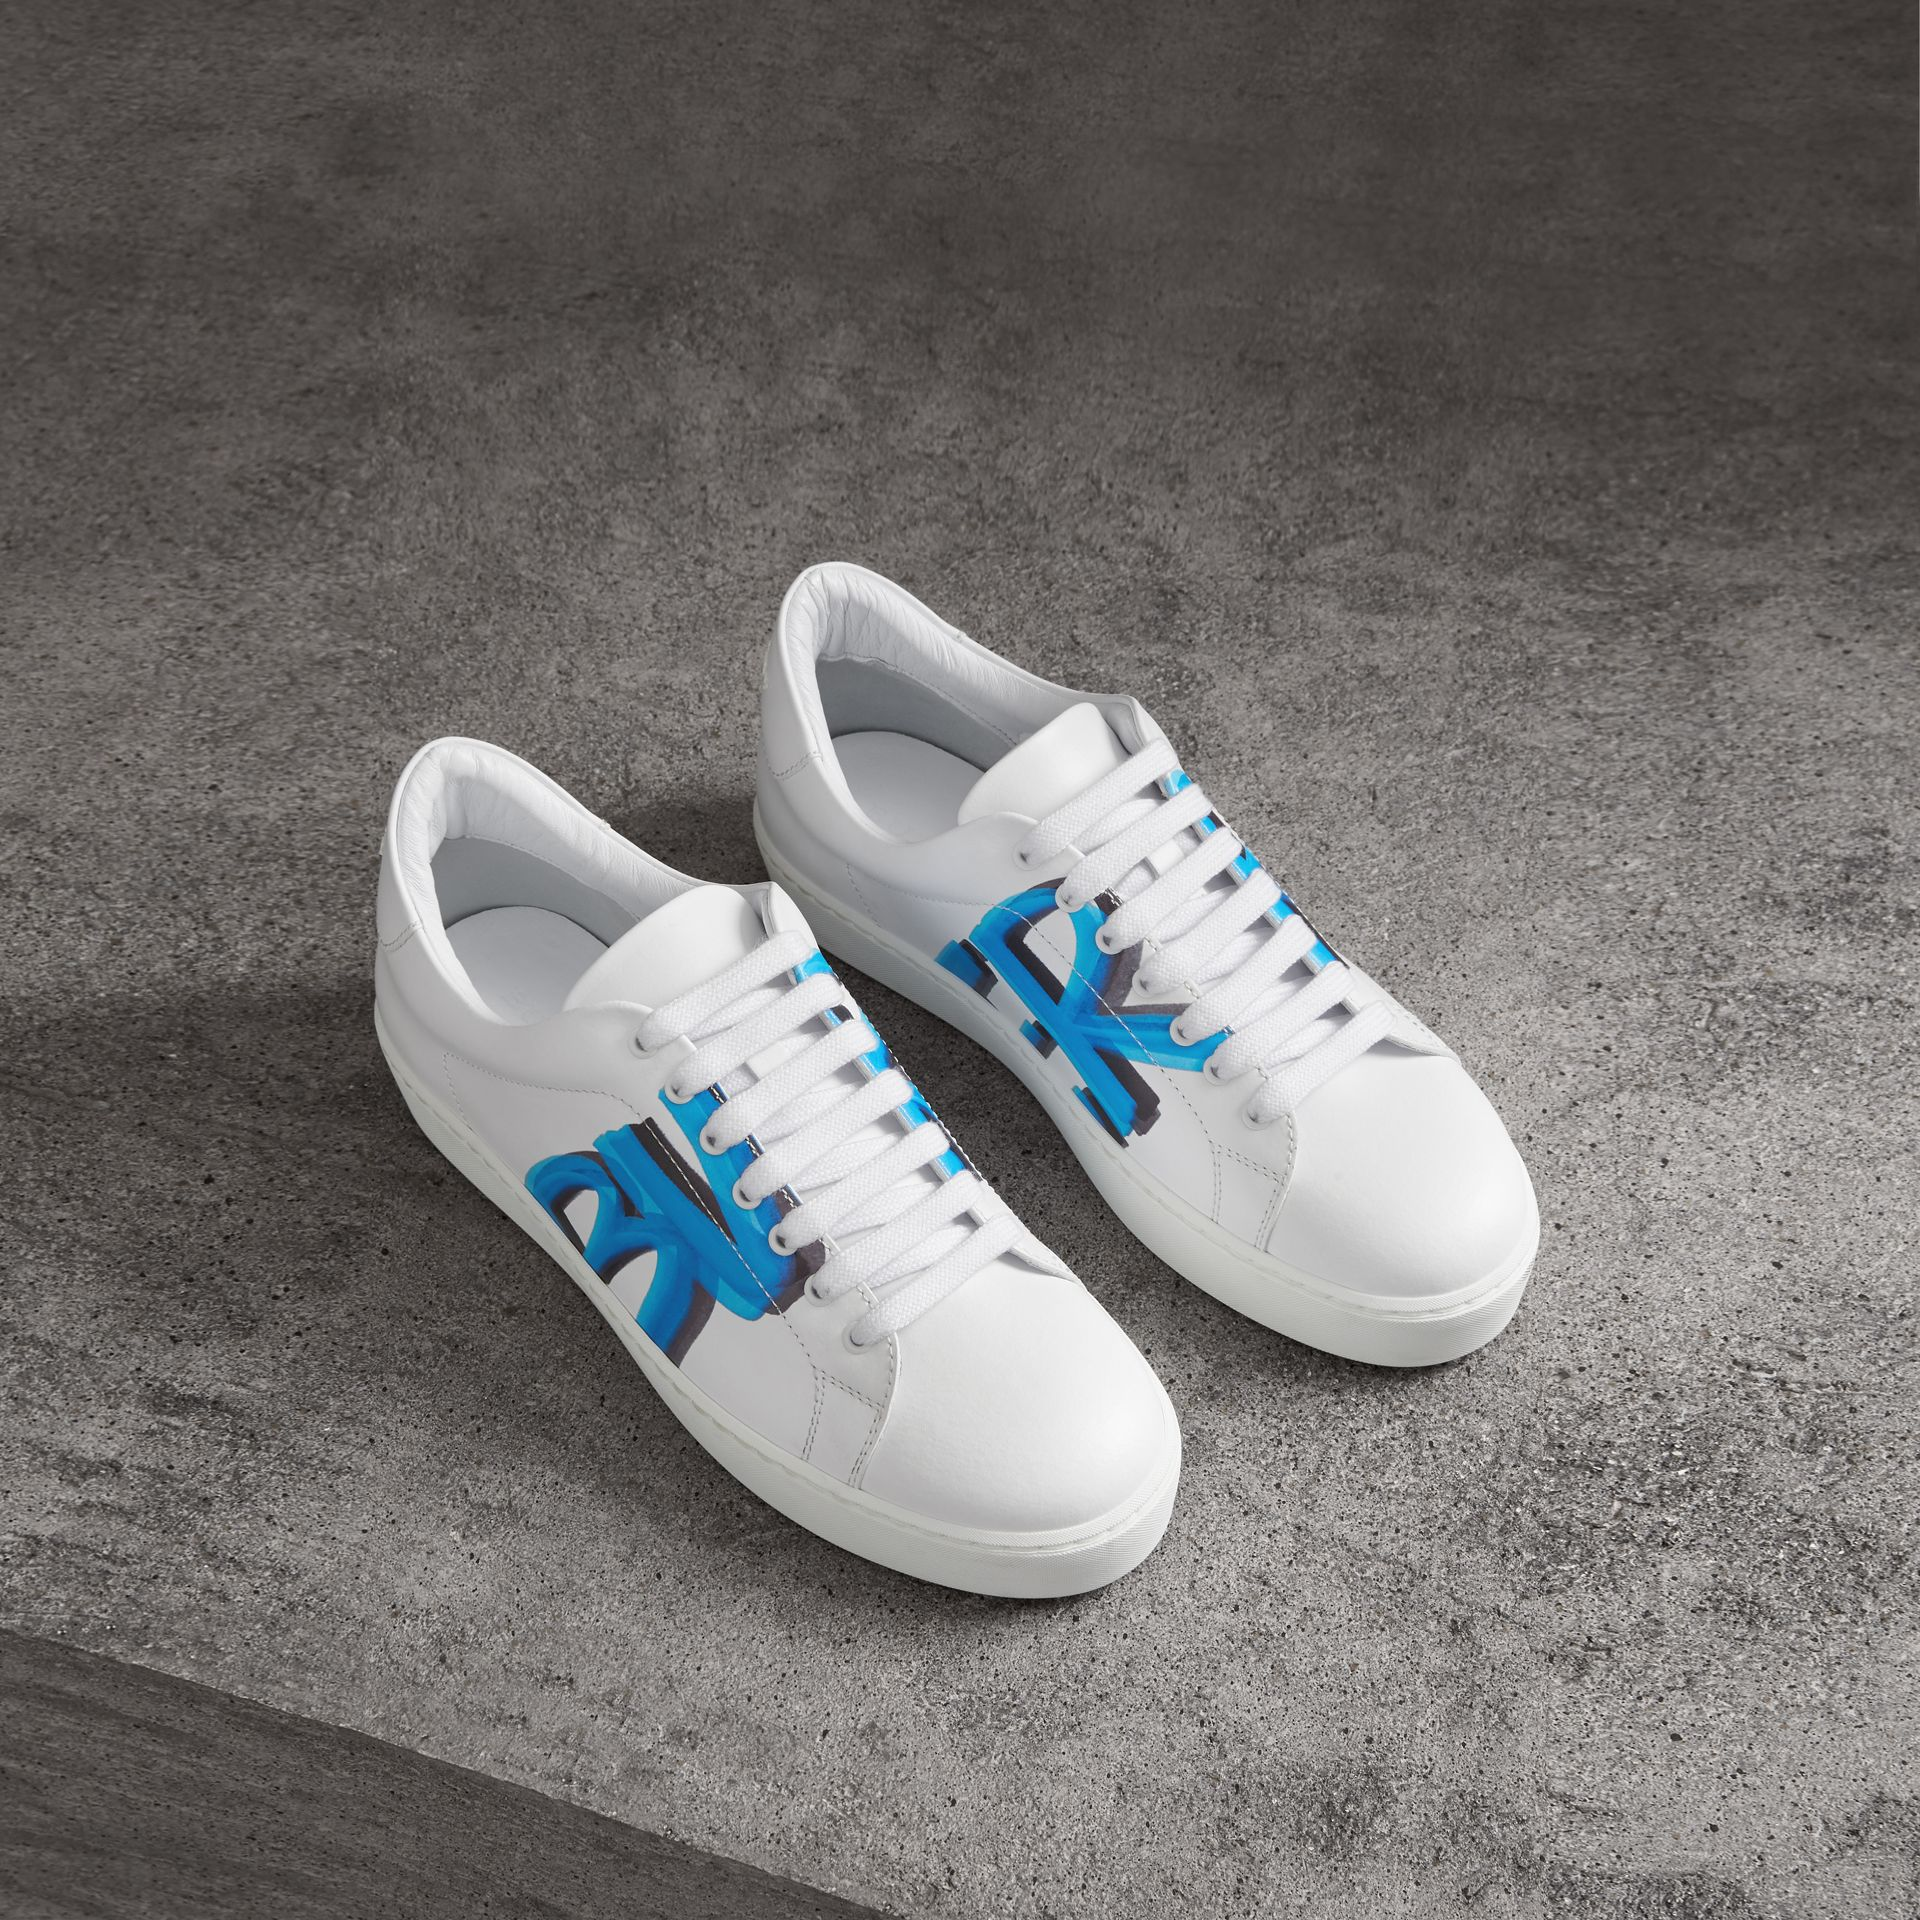 Graffiti Print Leather Sneakers in Bright Sky Blue - Women | Burberry Singapore - gallery image 0